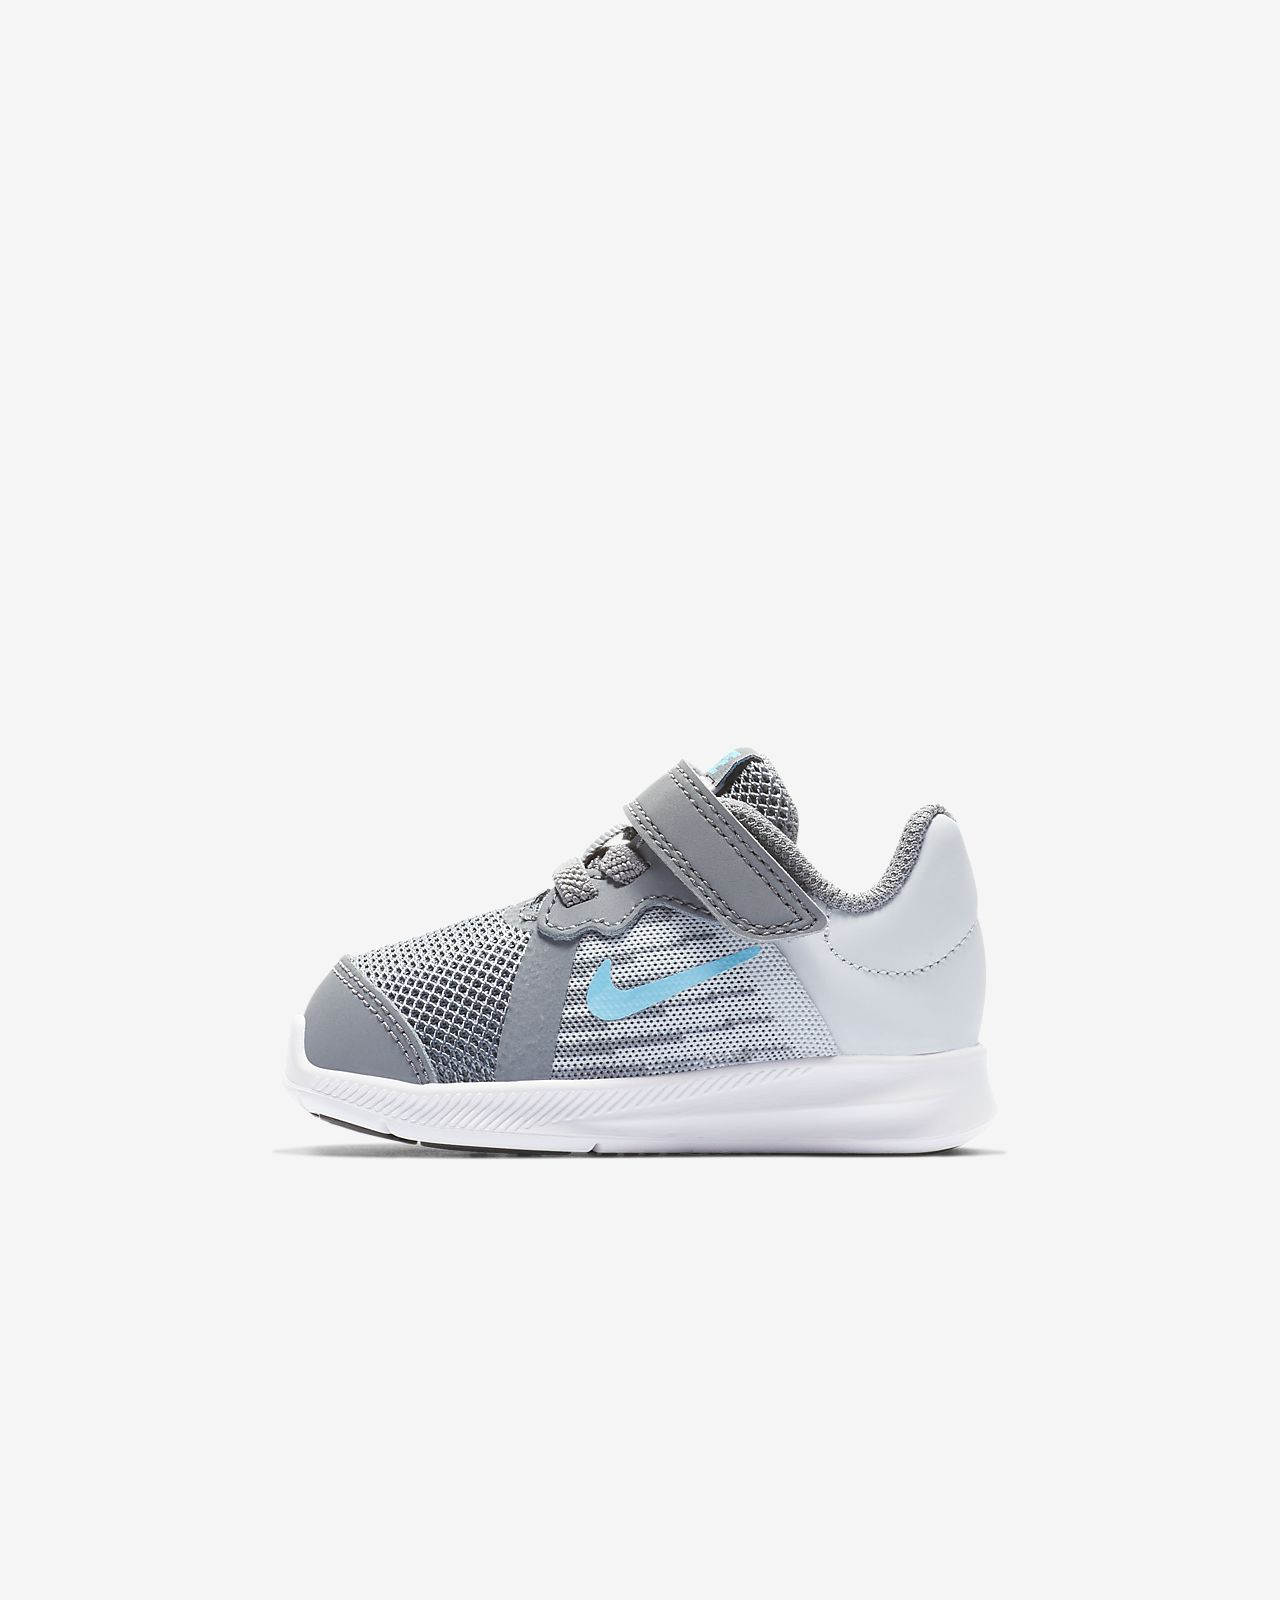 db51c4f2eff Nike Downshifter 8 Schoen voor baby's/peuters. Nike.com BE